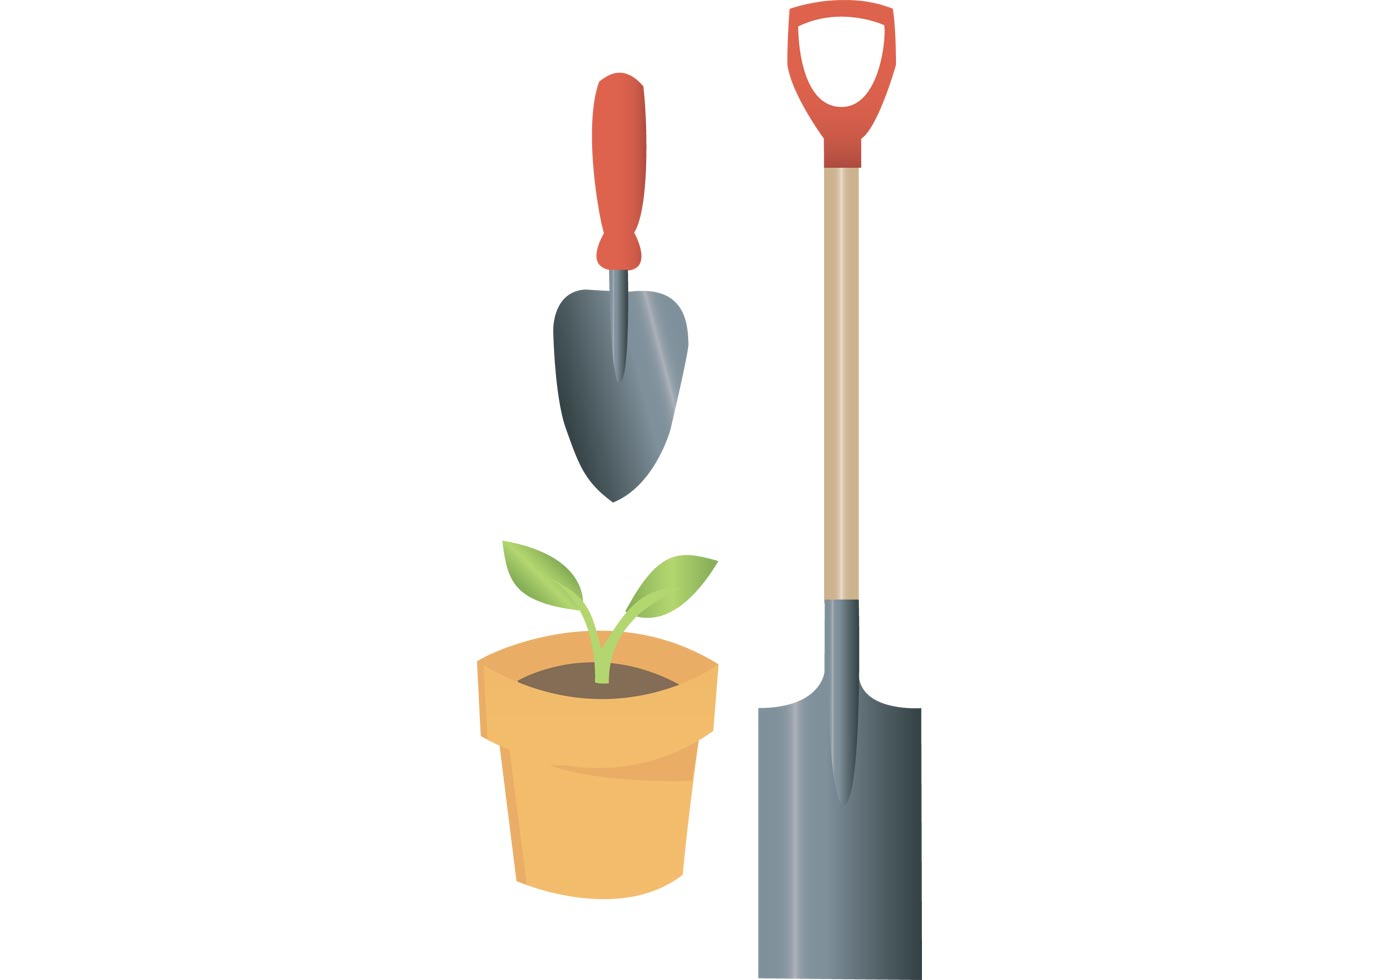 Free garden equipment vectors from vecteezy for Gardening tools cartoon